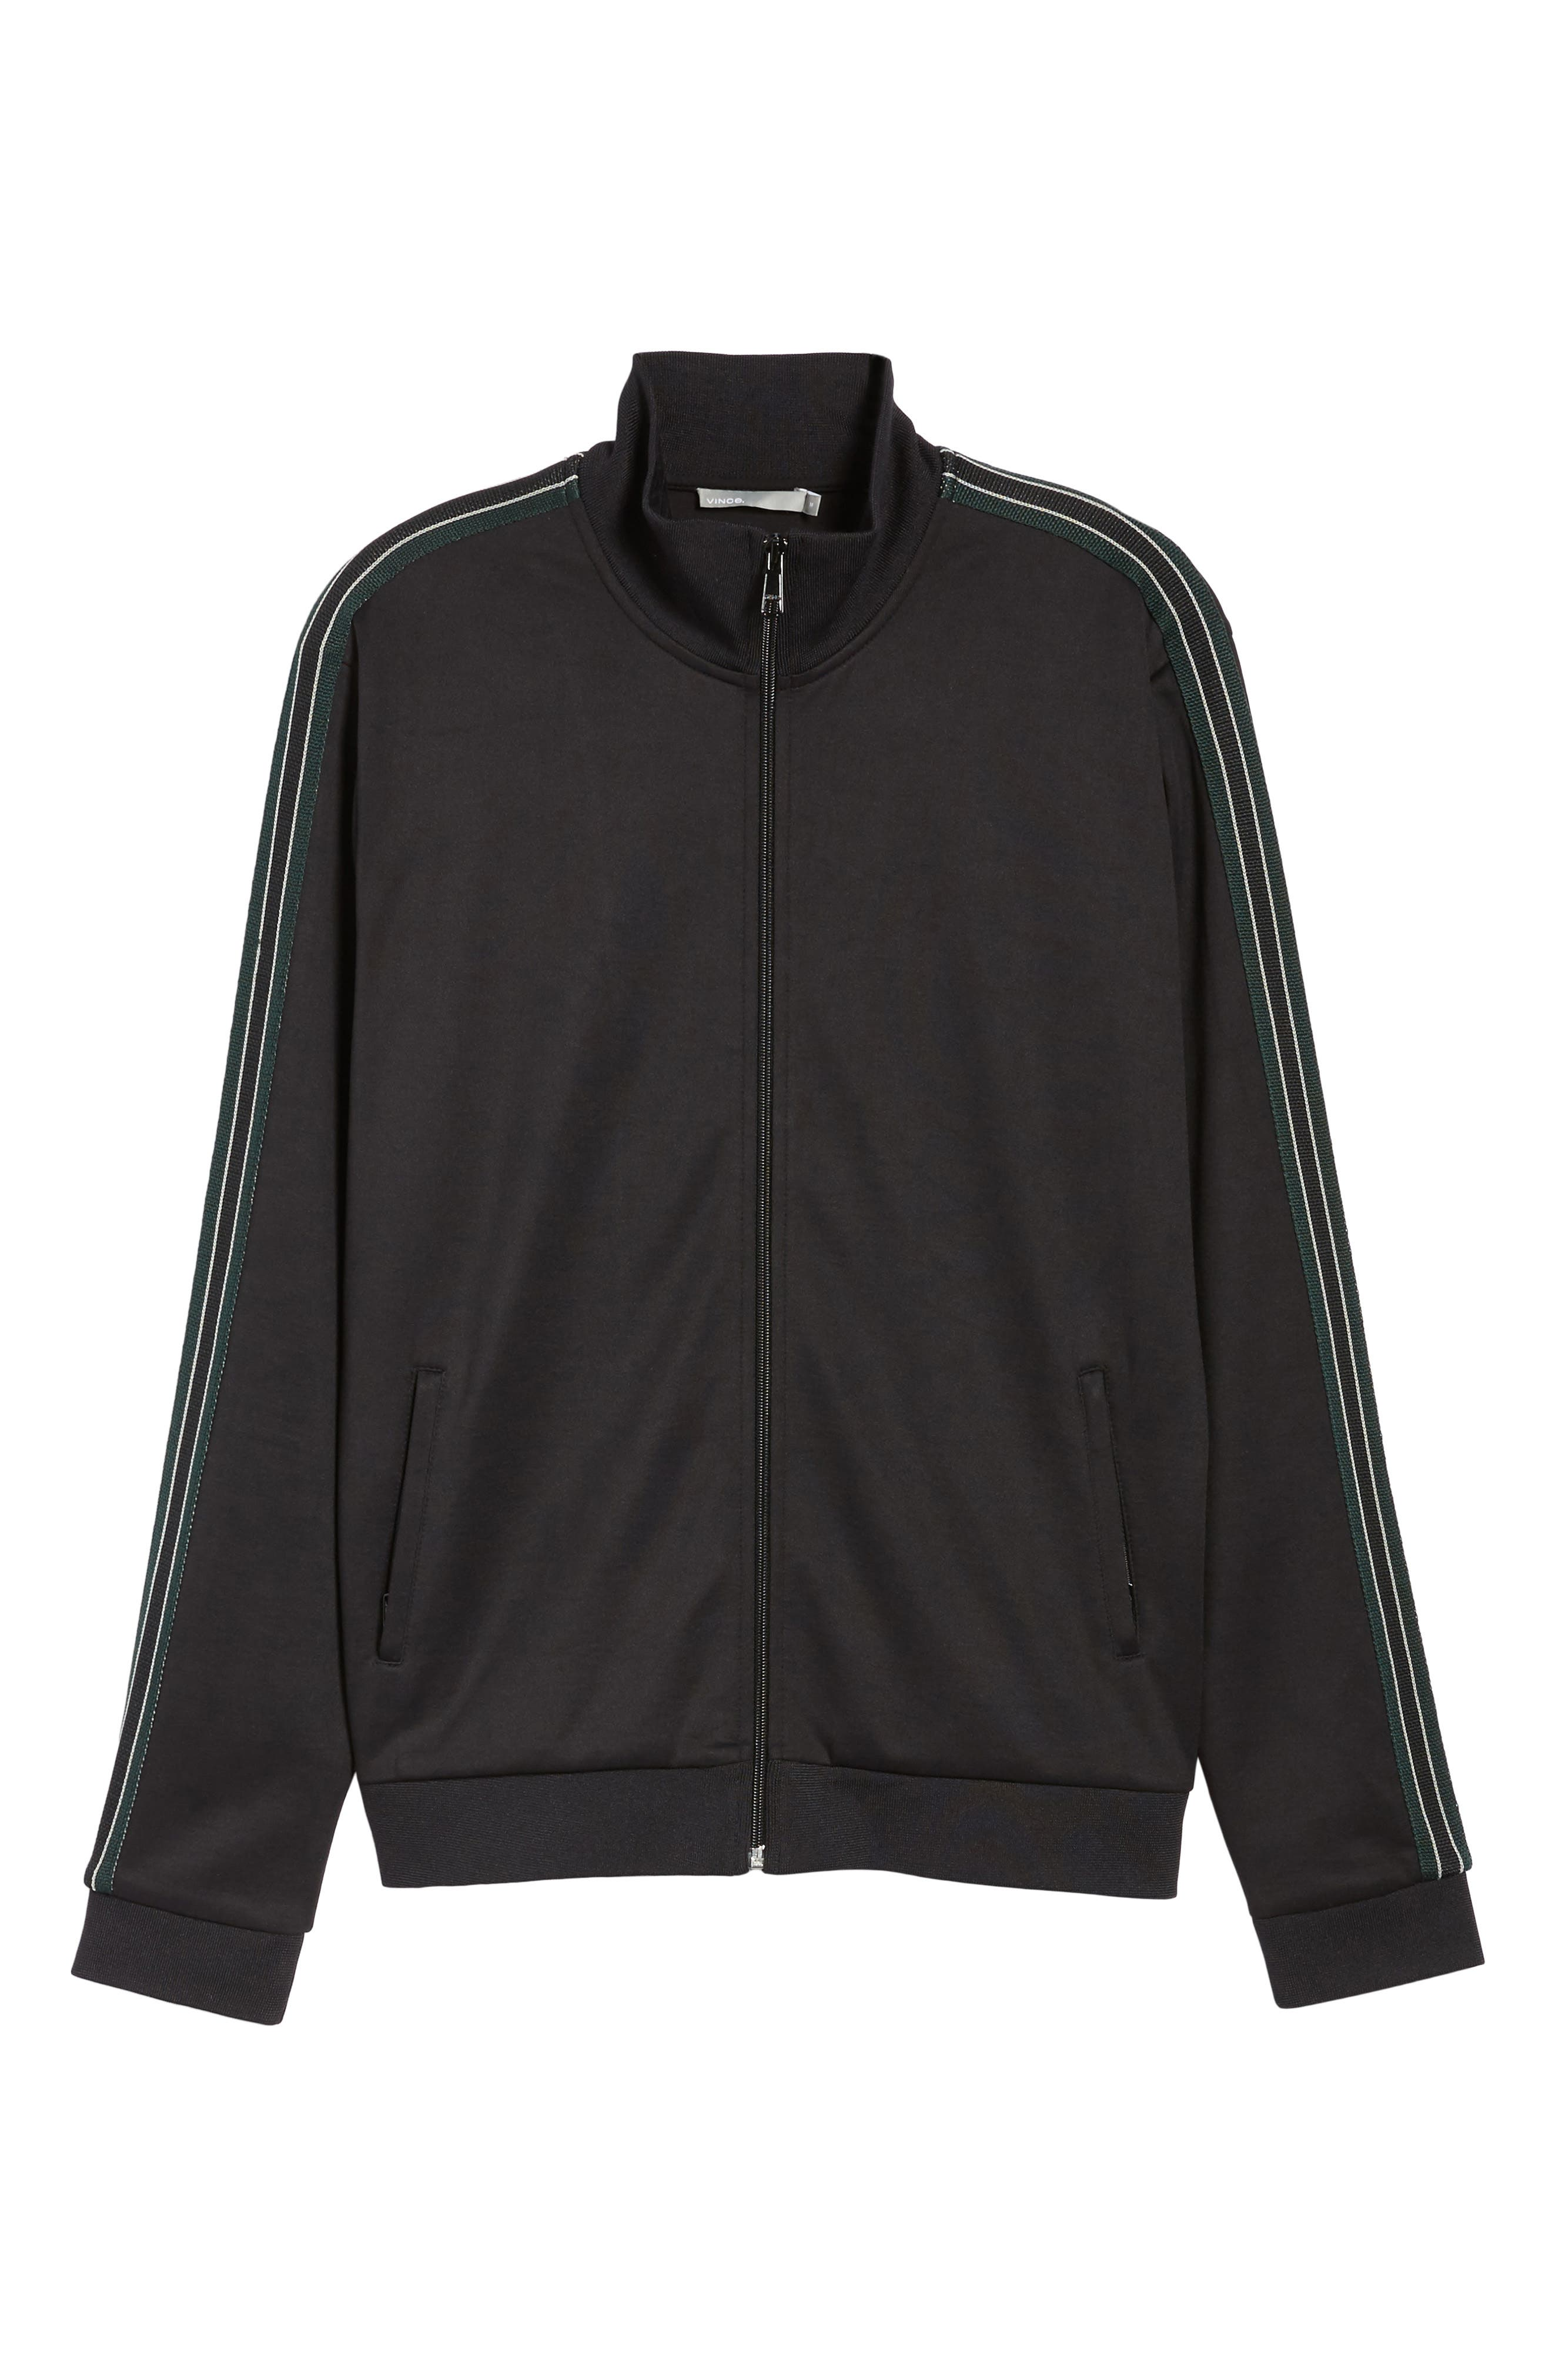 Regular Fit Track Jacket,                             Alternate thumbnail 7, color,                             001